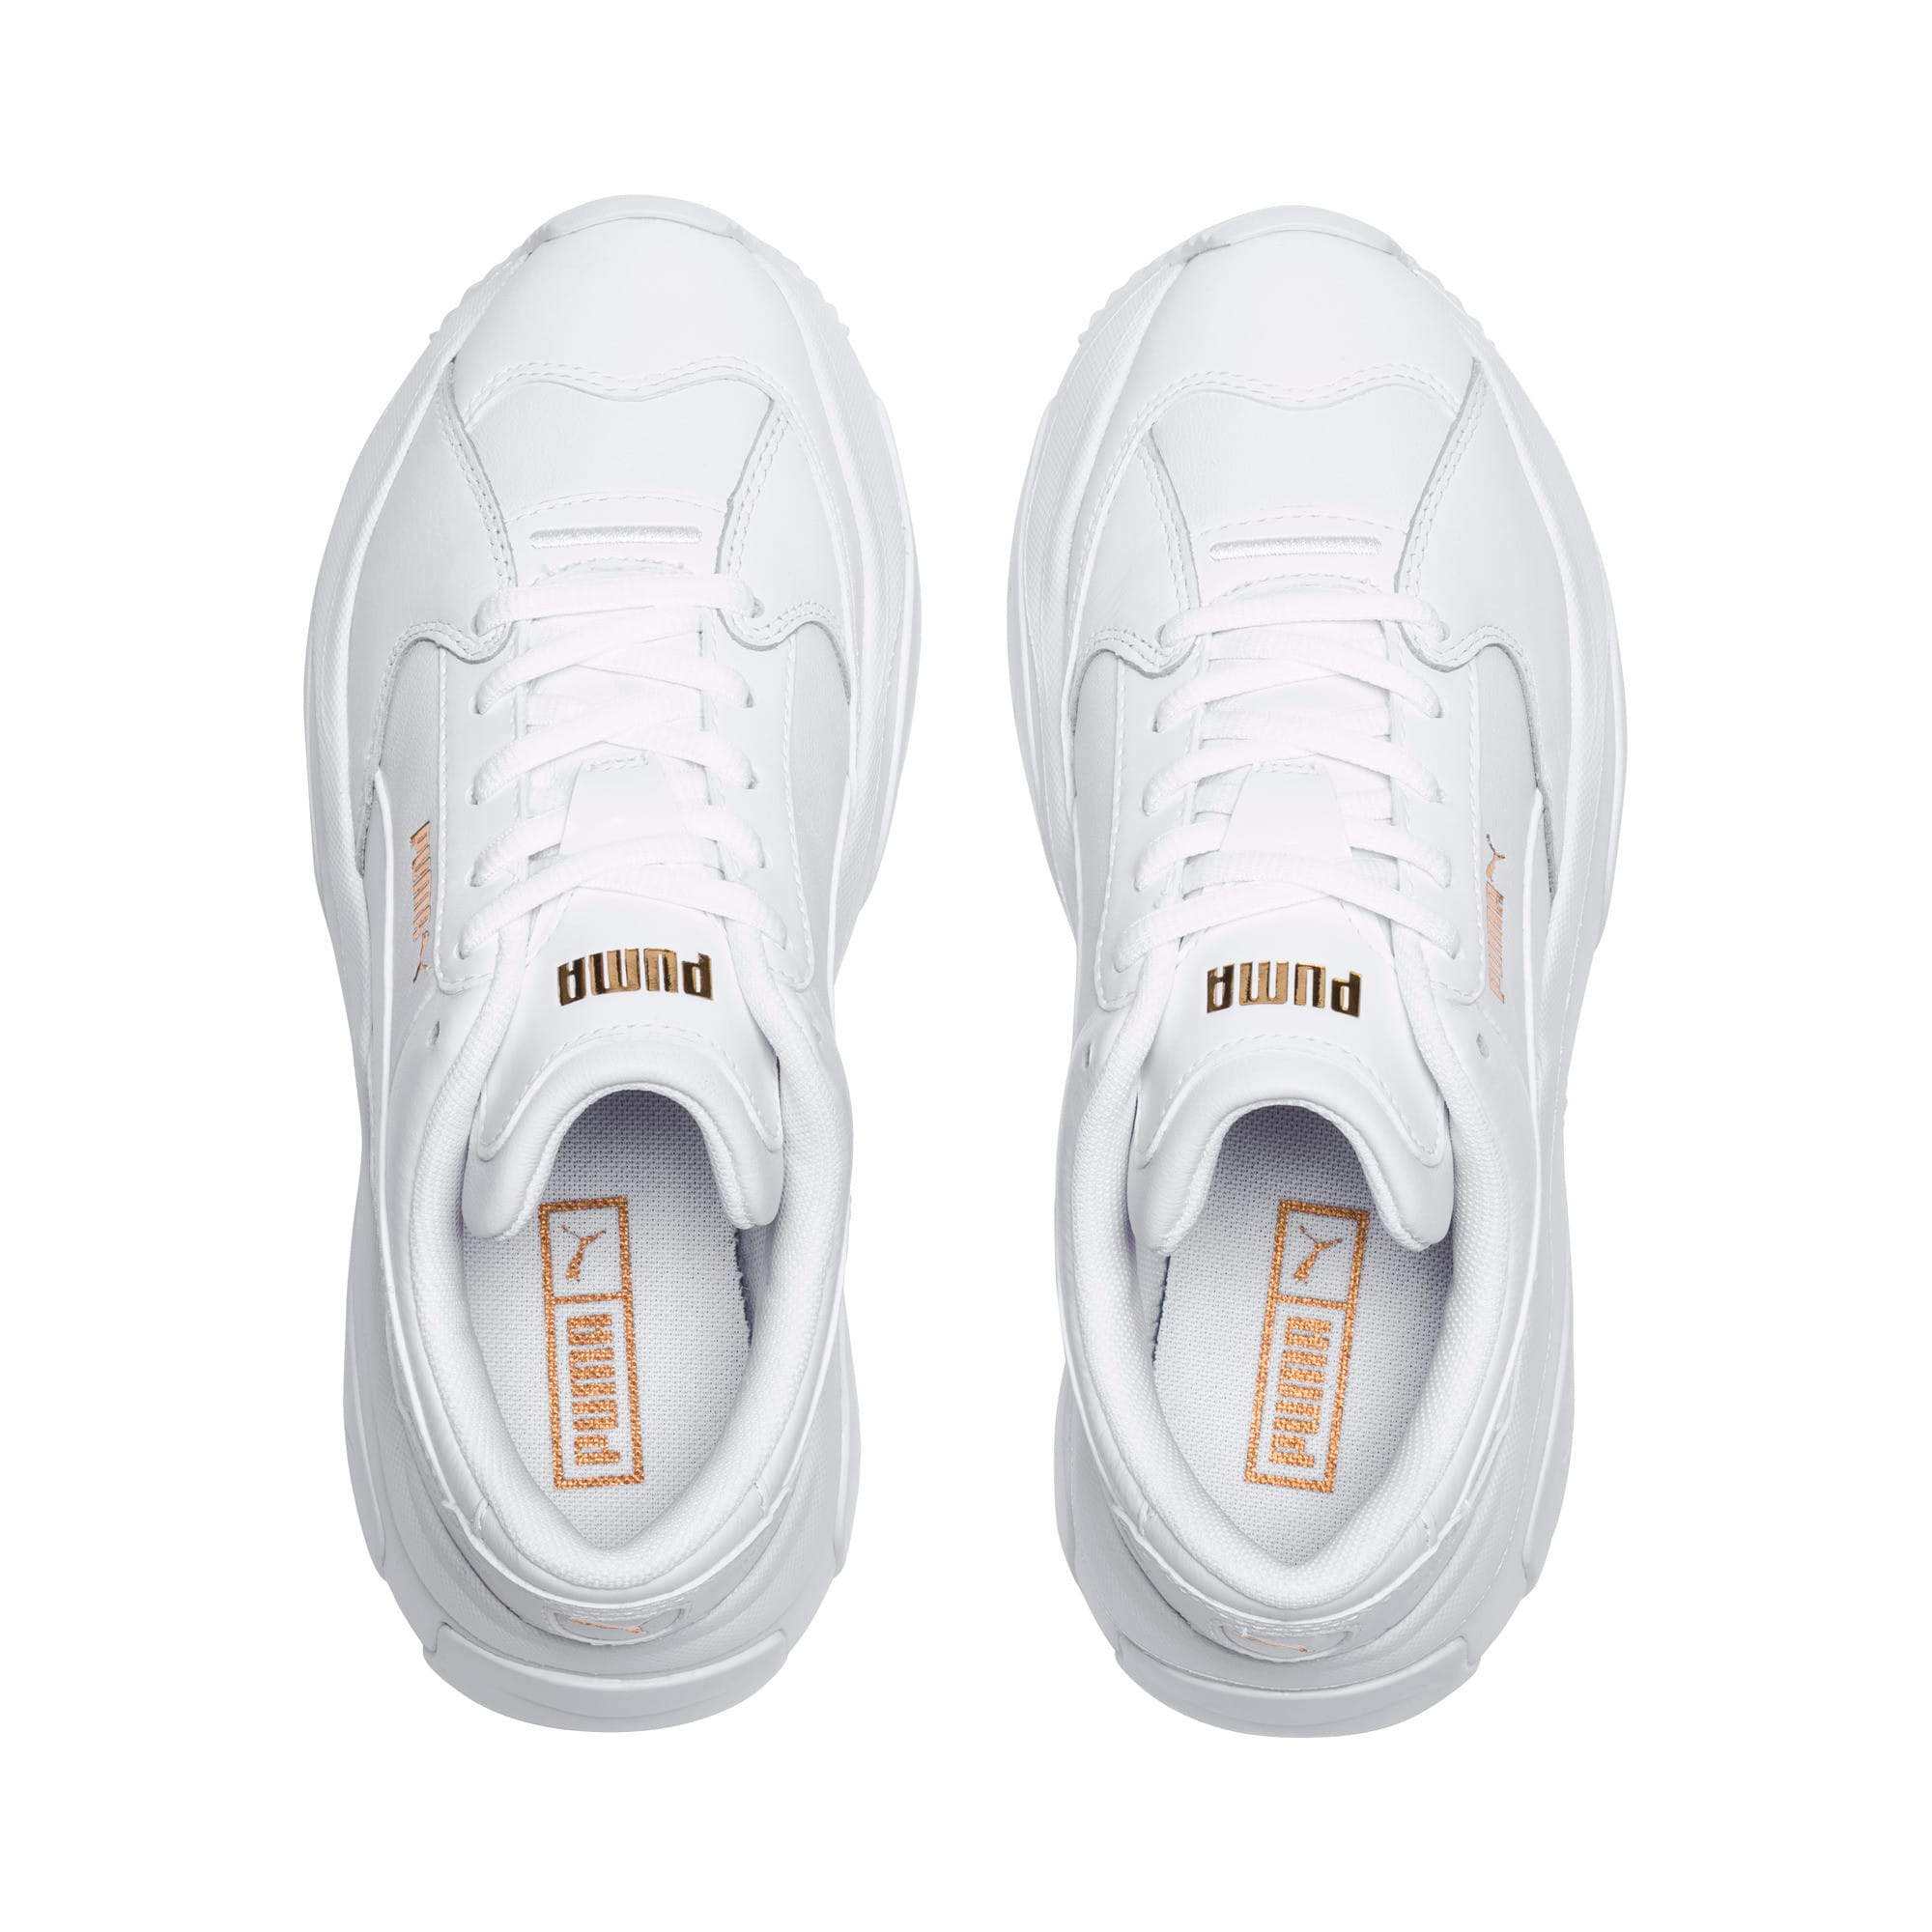 Thumbnail 6 of STORM.Y Leather Women's Trainers, Puma White, medium